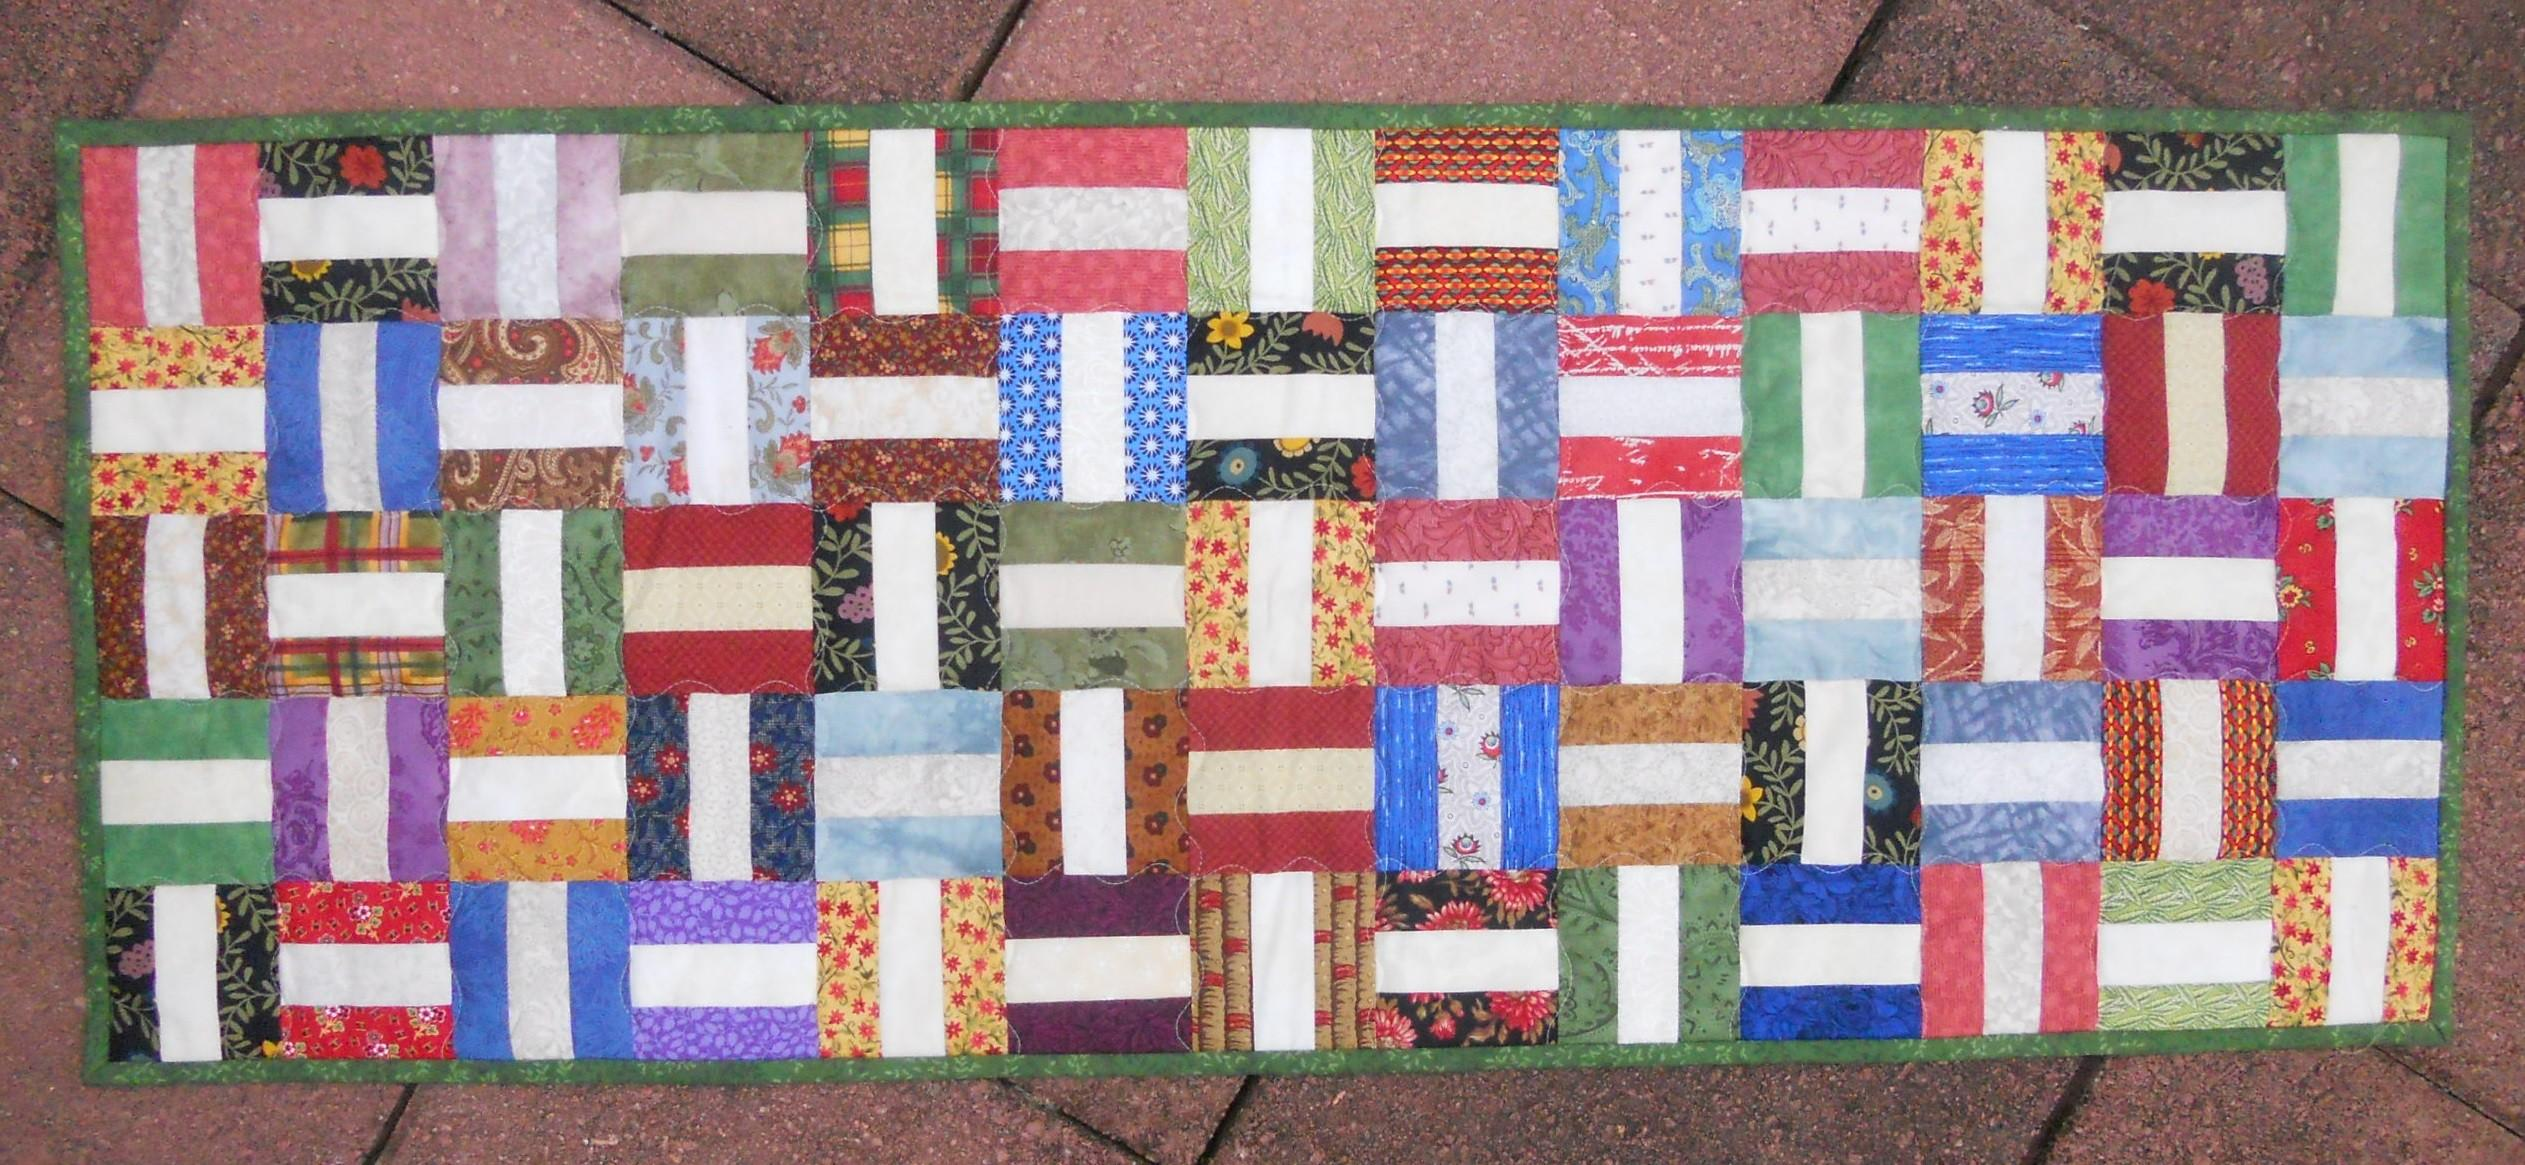 Table Tiles Quilted Runner Abyquilts